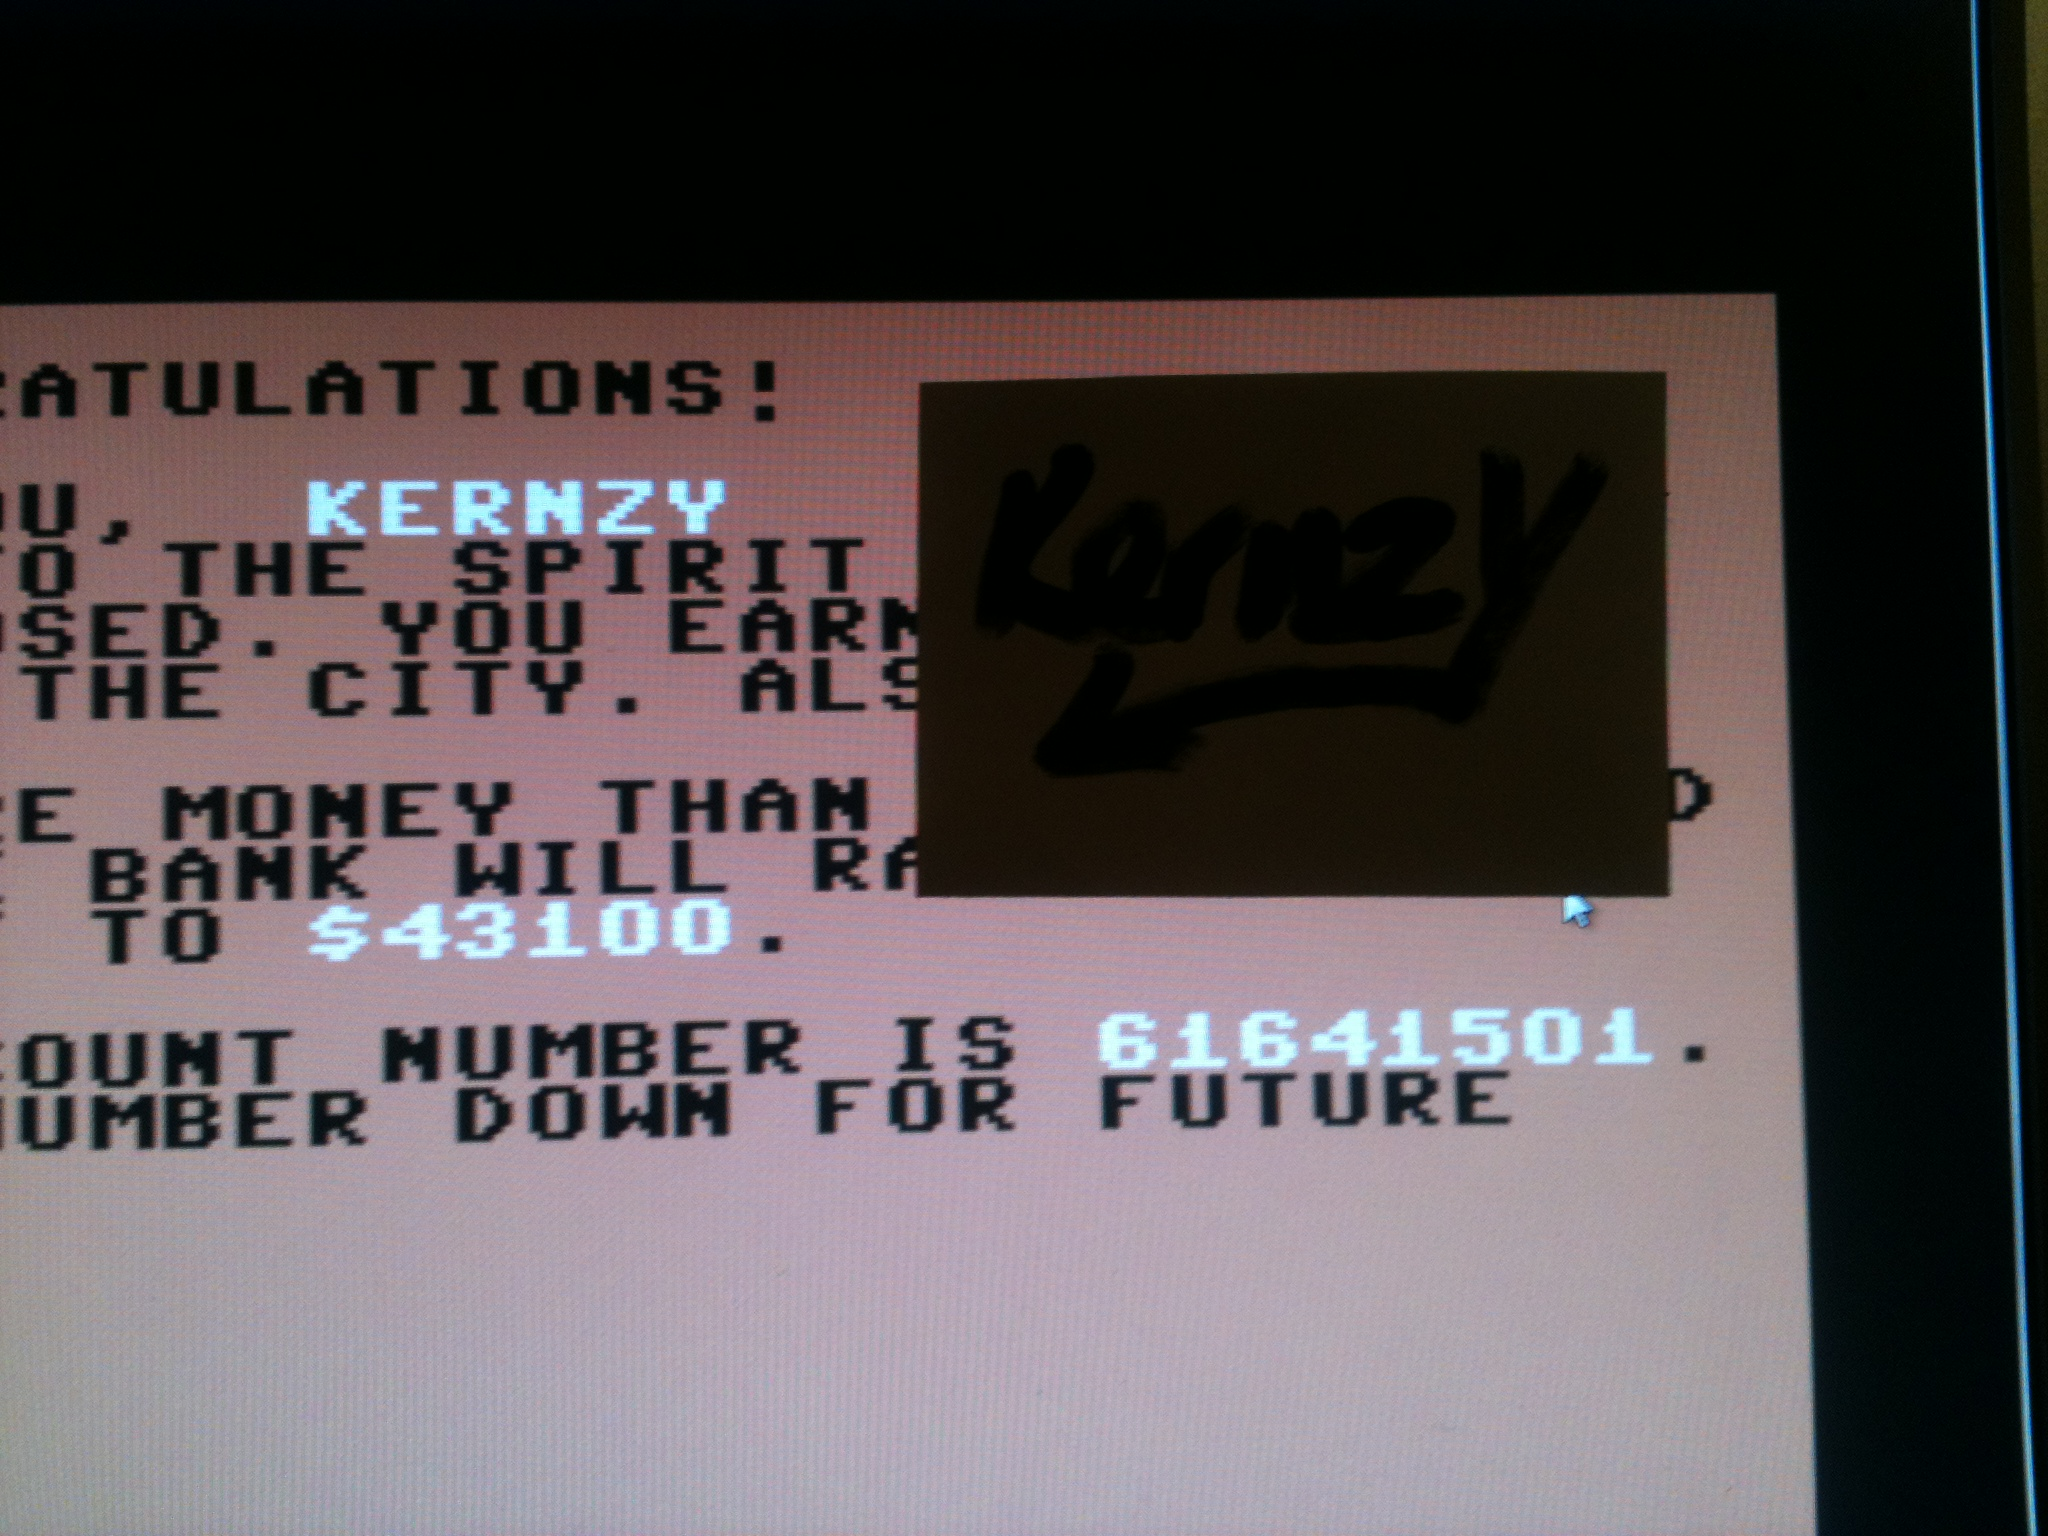 kernzy: Ghostbusters (Commodore 64 Emulated) 43,100 points on 2015-05-04 19:07:30